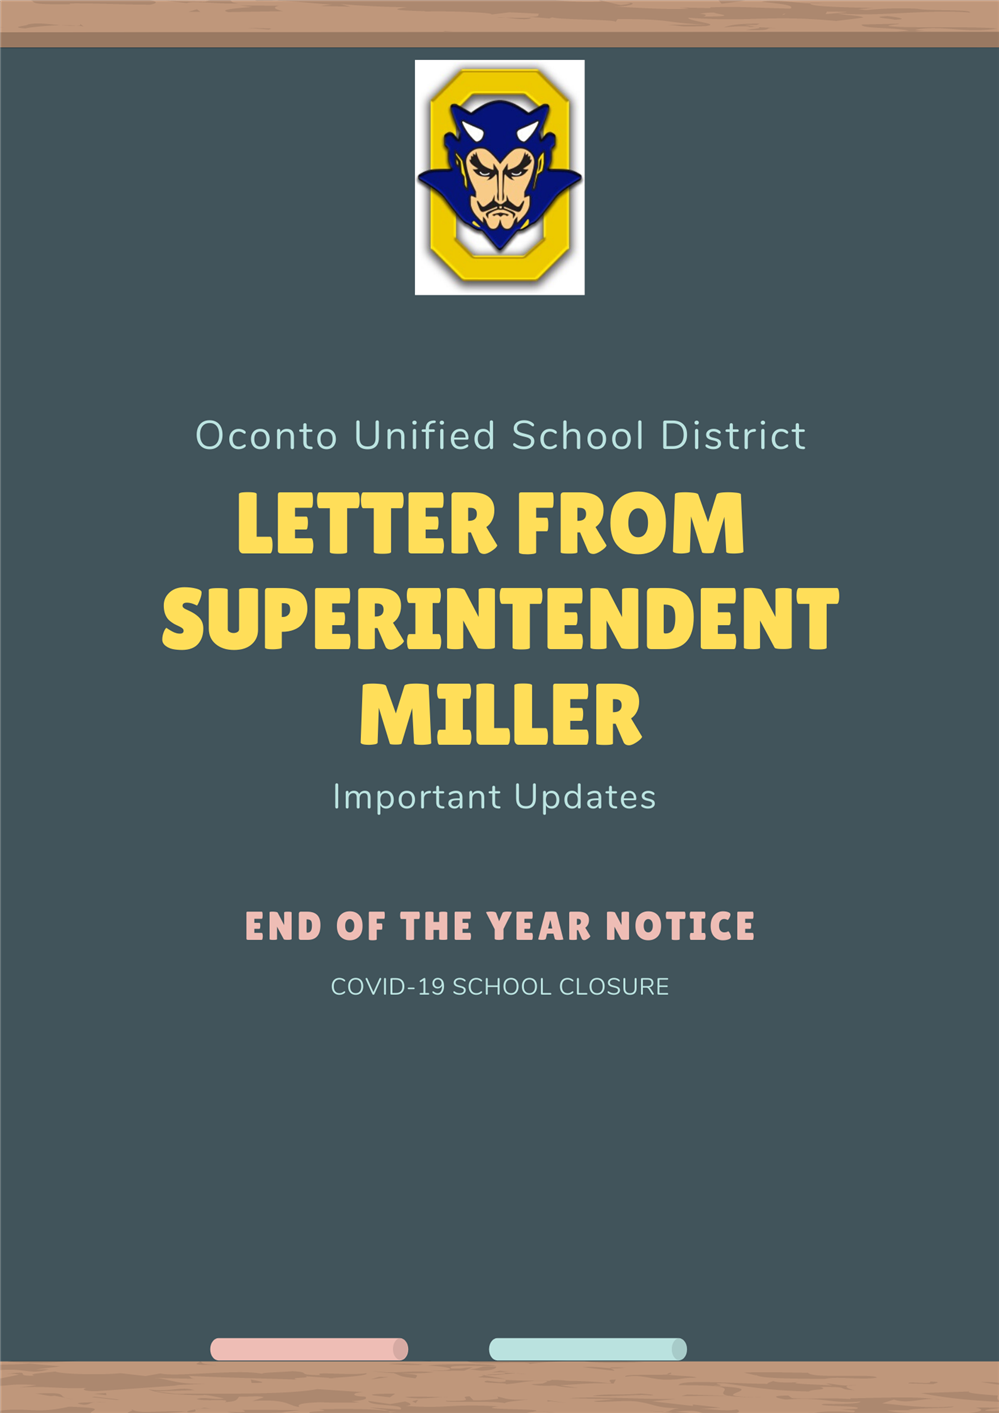 END OF YEAR NOTICE: SUPERINTENDENT MILLER (May 1, 2020)